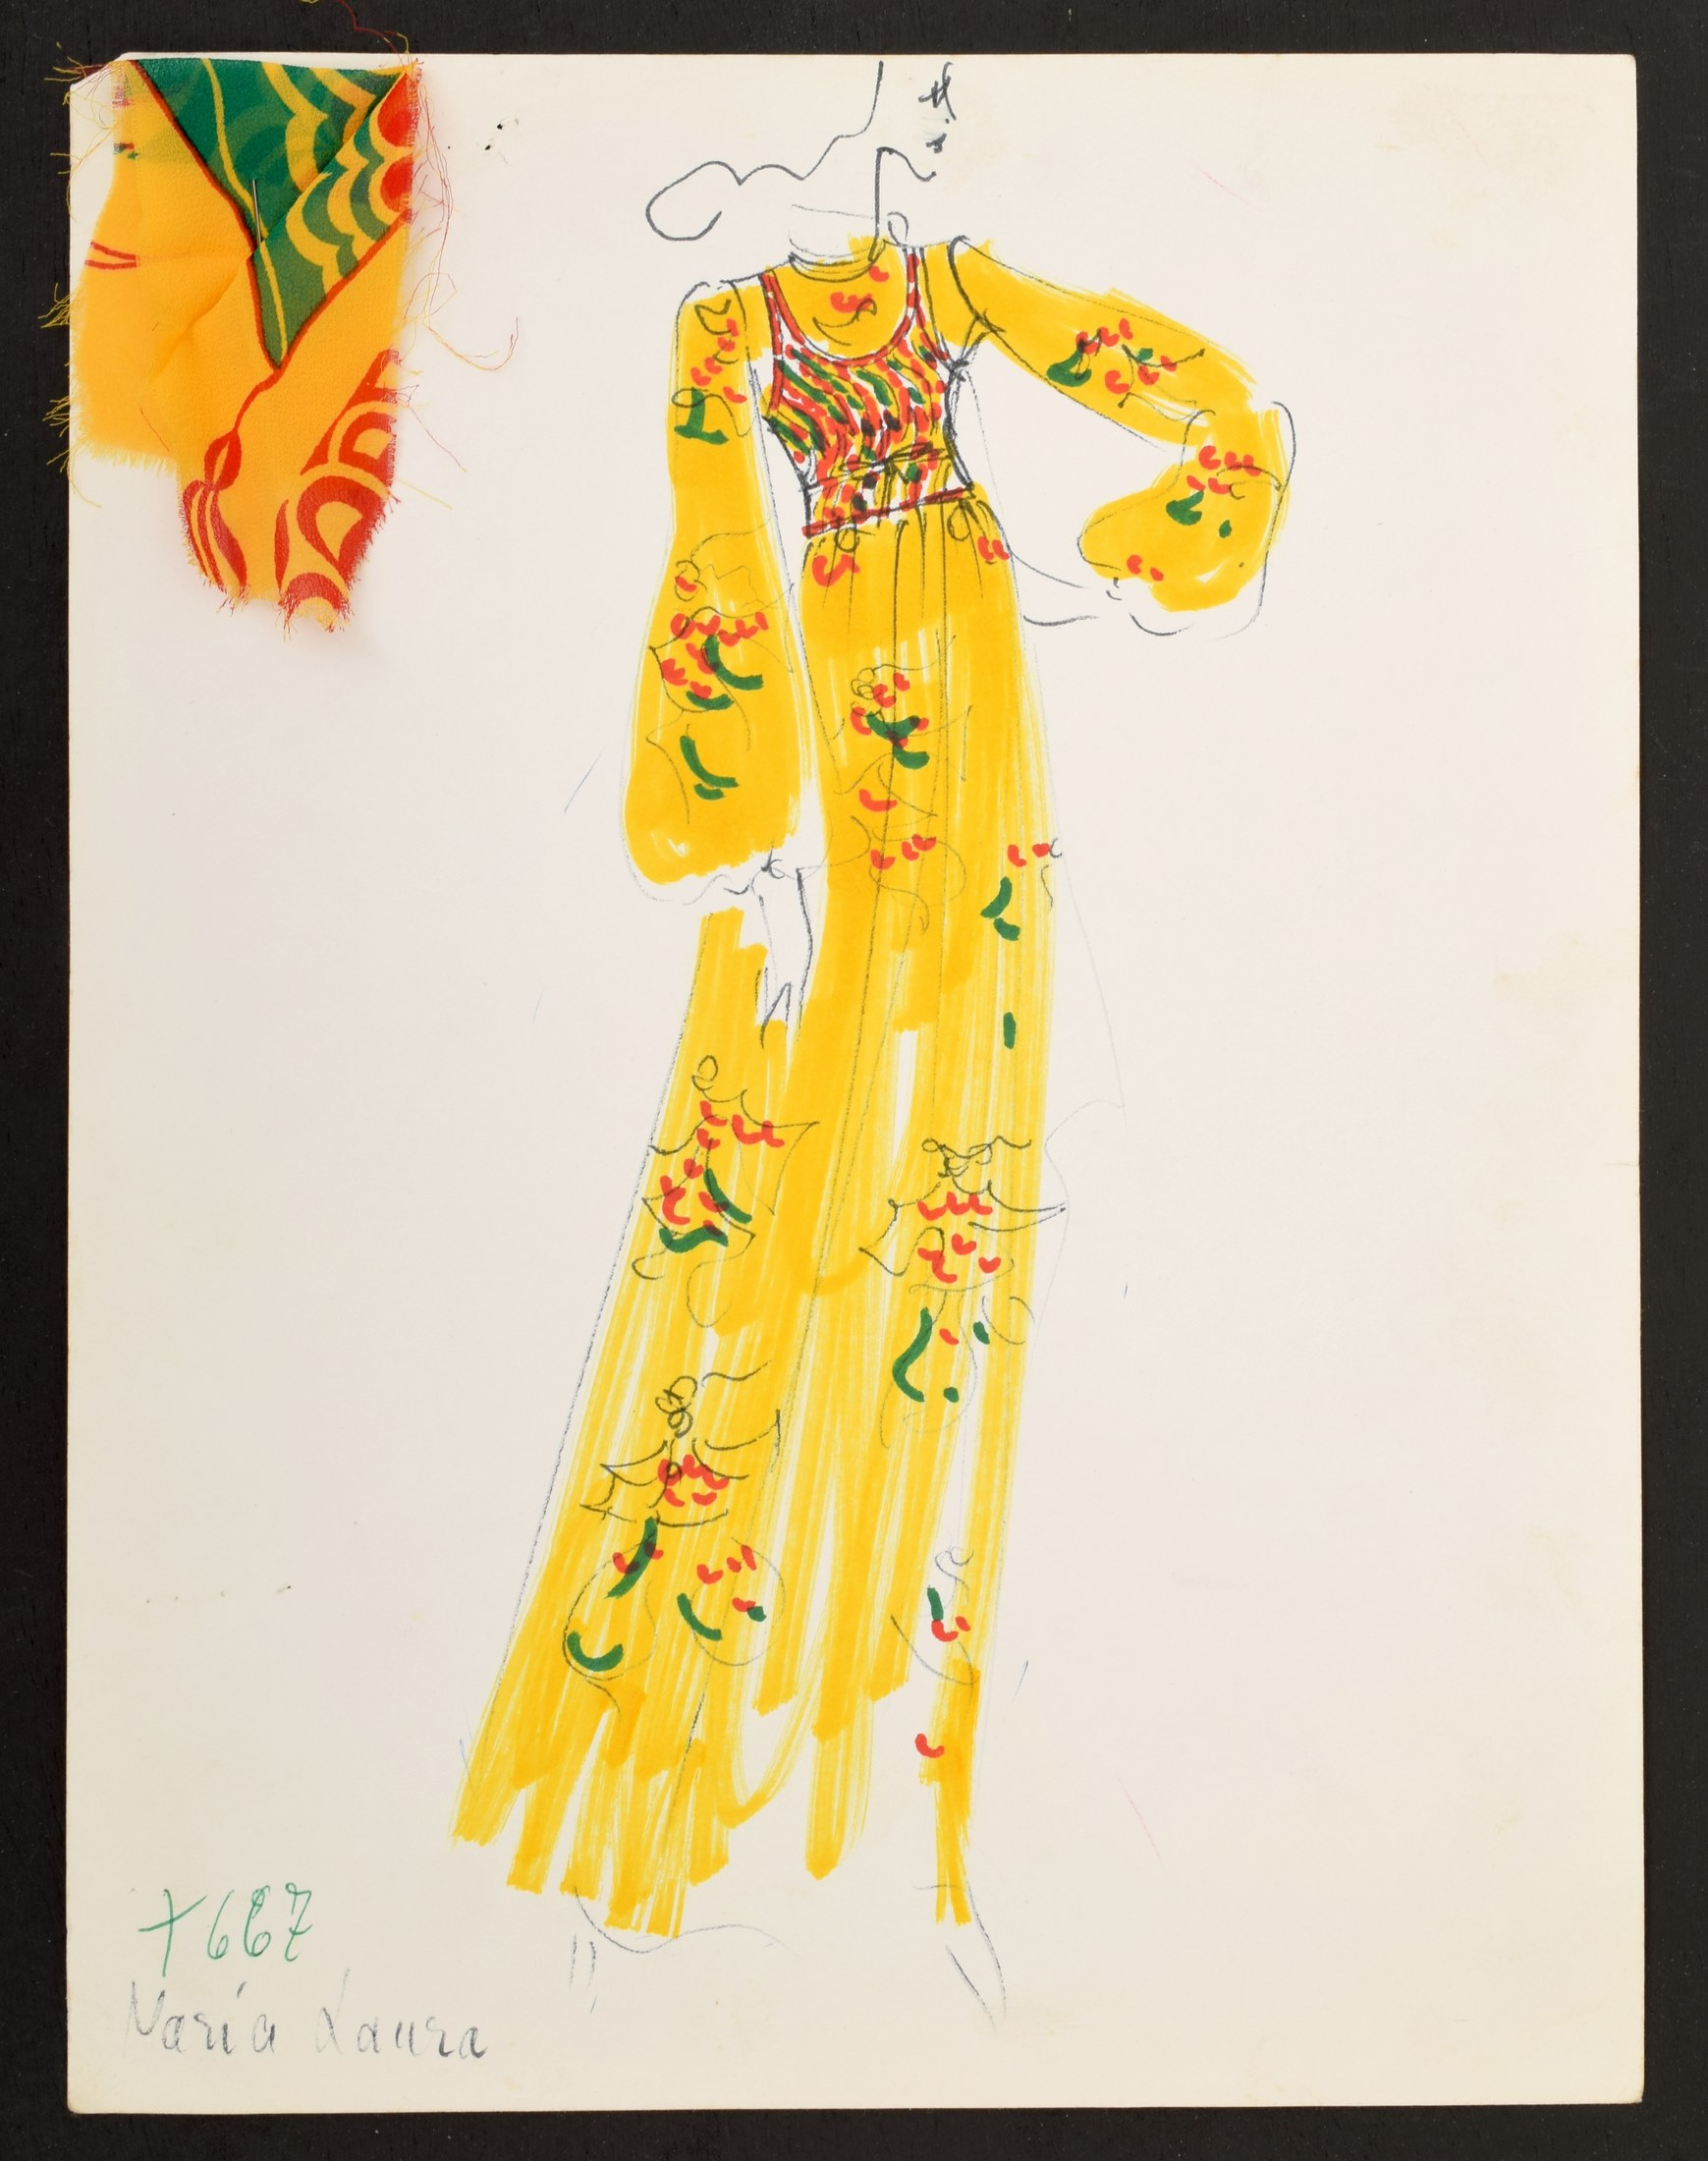 1960s hand-colored, hand-annotated original fashion drawing created by Karl Lagerfeld (German, 1933-2019) while engaged by House of Tiziani, Rome. Fabric swatch attached. Estimate: $500-$1,5001960s hand-colored, hand-annotated original fashion drawing created by Karl Lagerfeld (German, 1933-2019) while engaged by House of Tiziani, Rome. Fabric swatch attached. Estimate: $500-$1,500